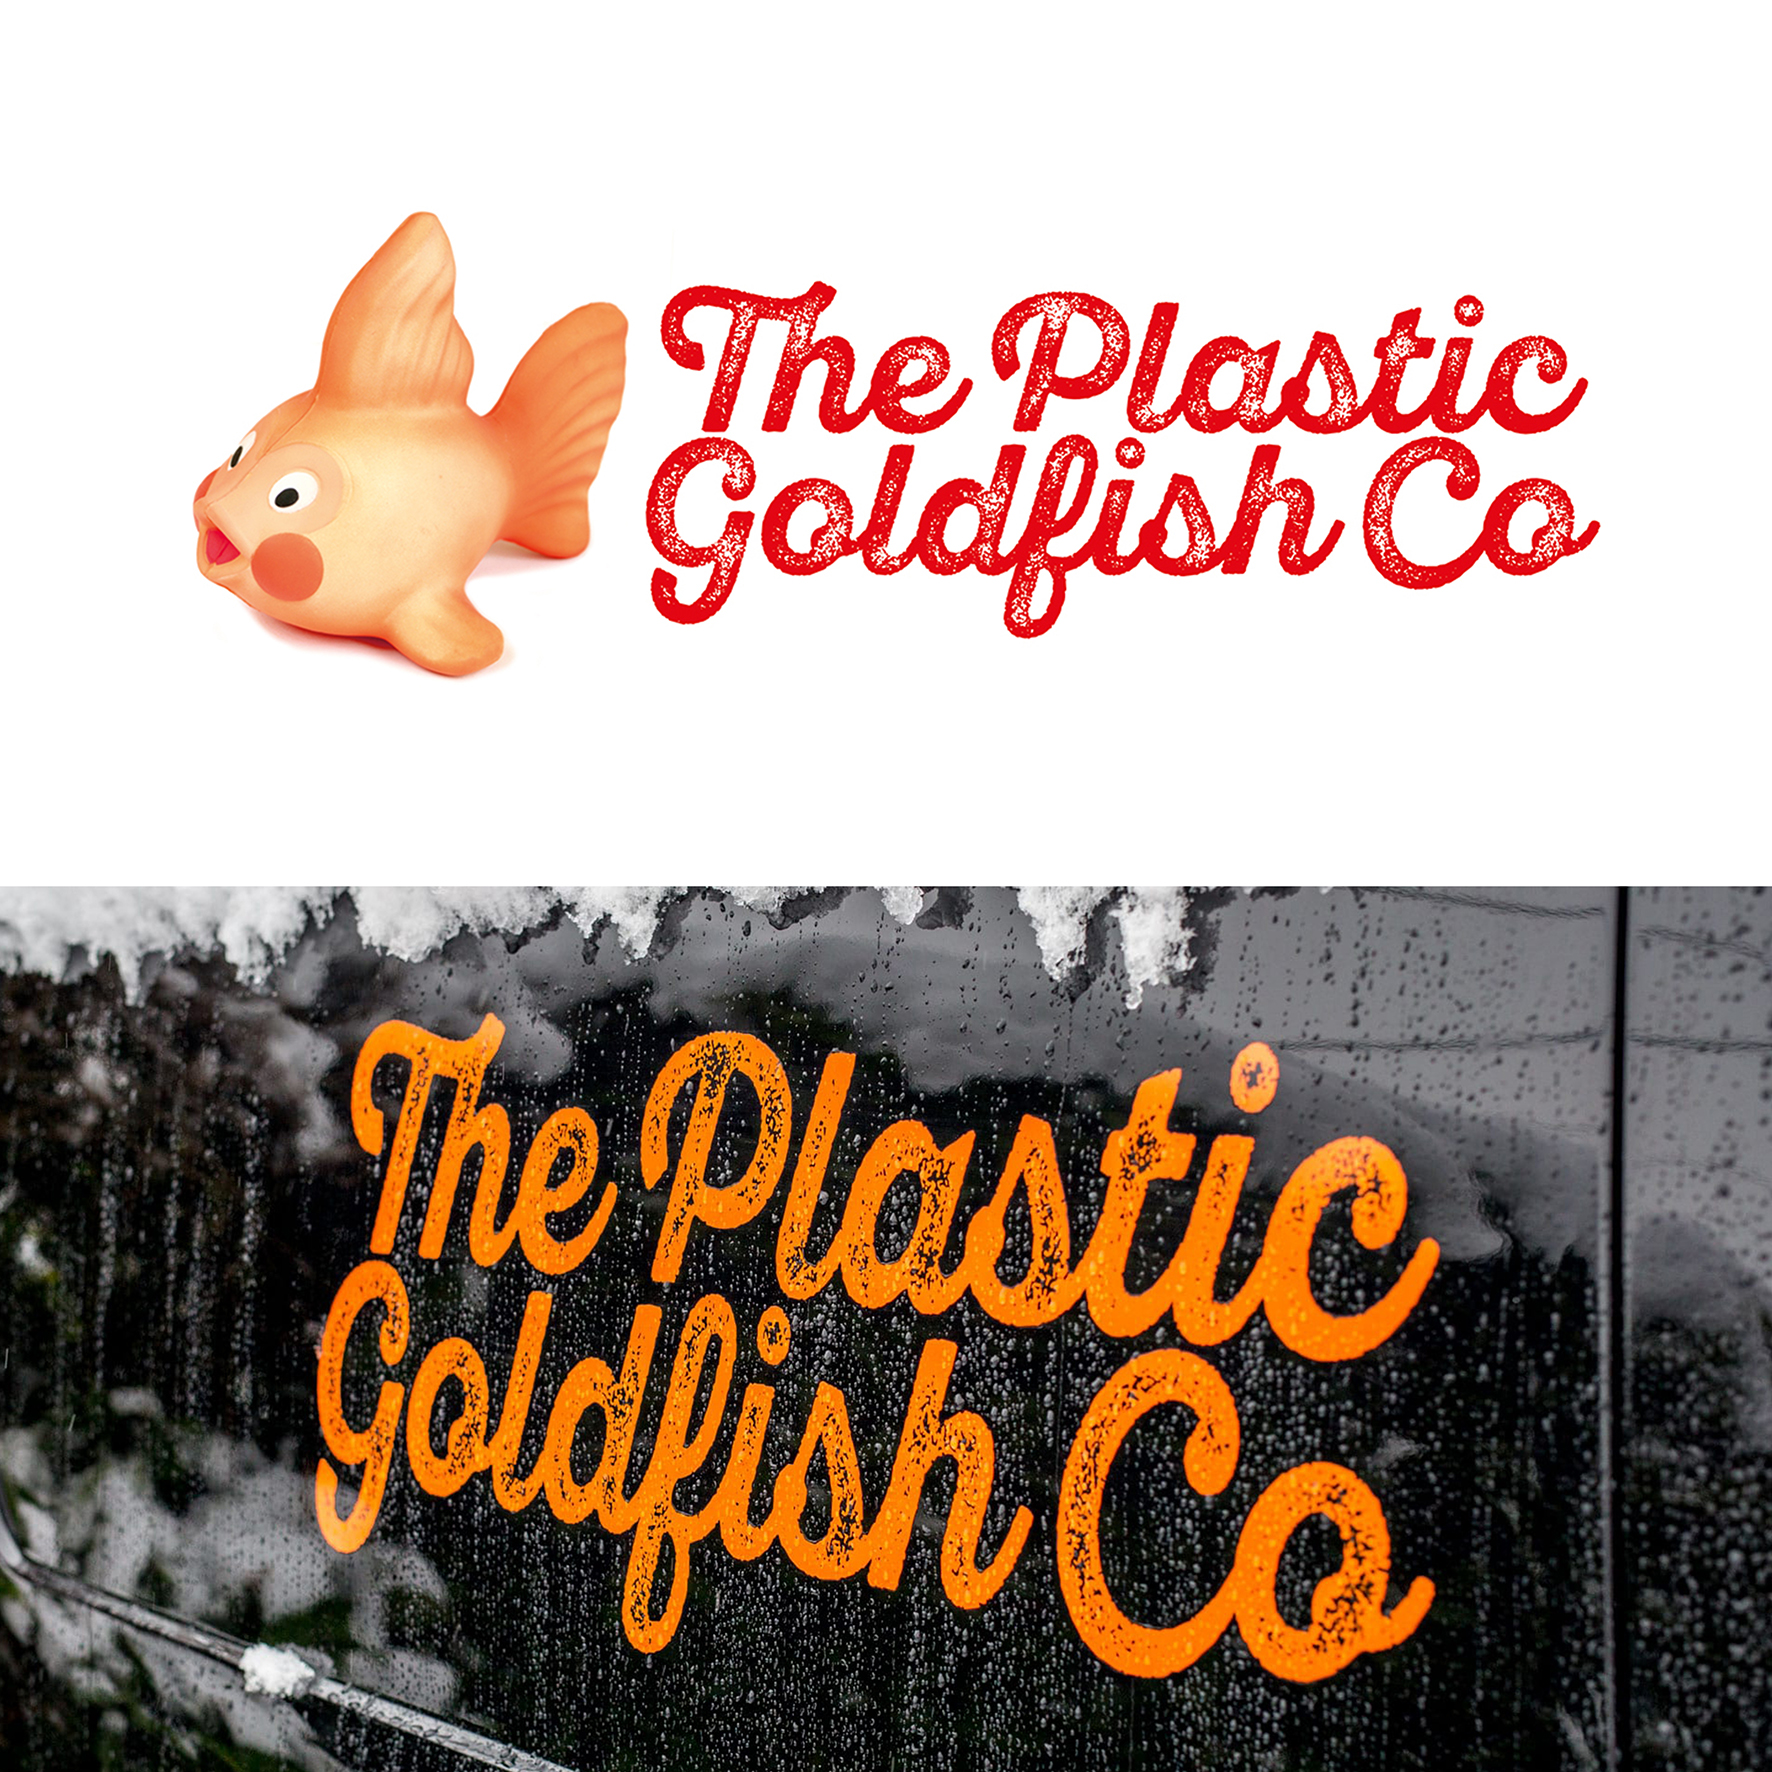 plastic goldfish logo and signwriting